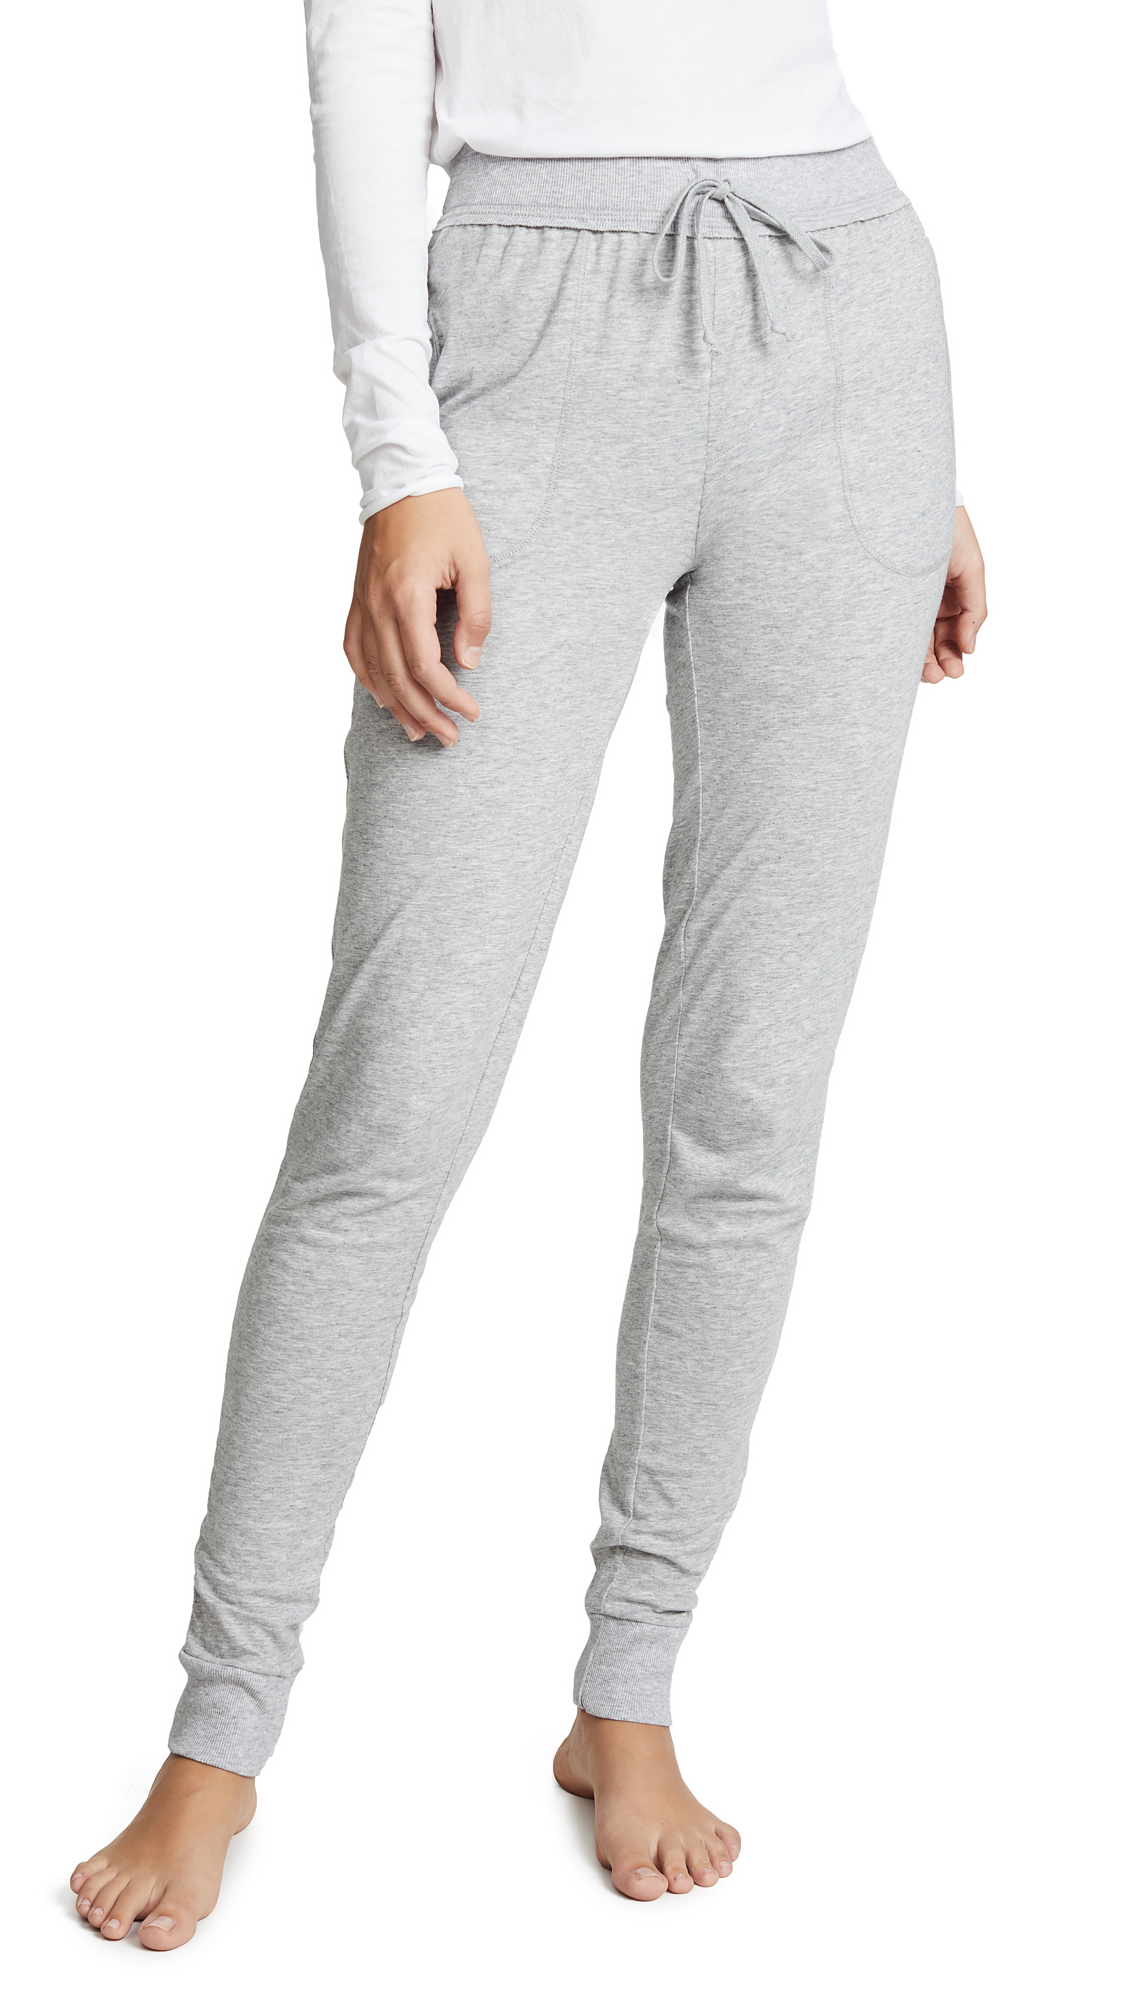 Skin Skinny Pants In Heather Grey